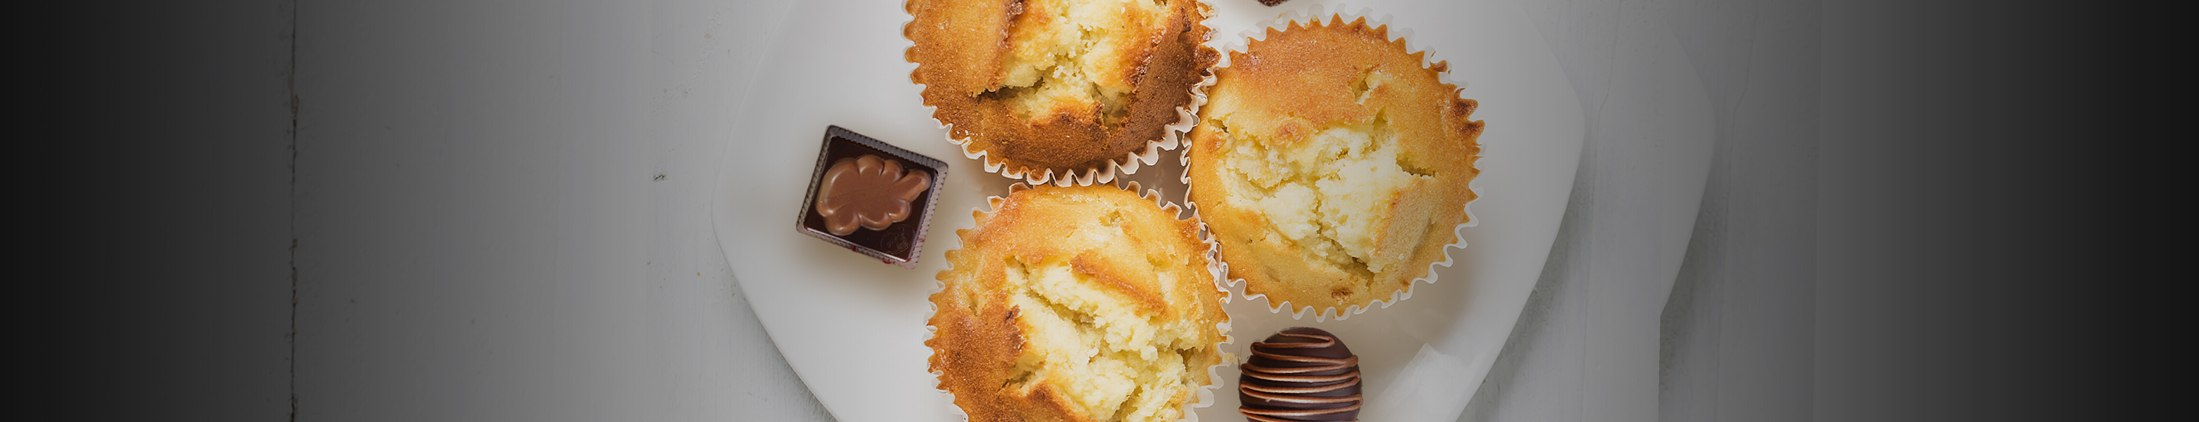 Muffins with Ovidias chocolates: the best of both worlds